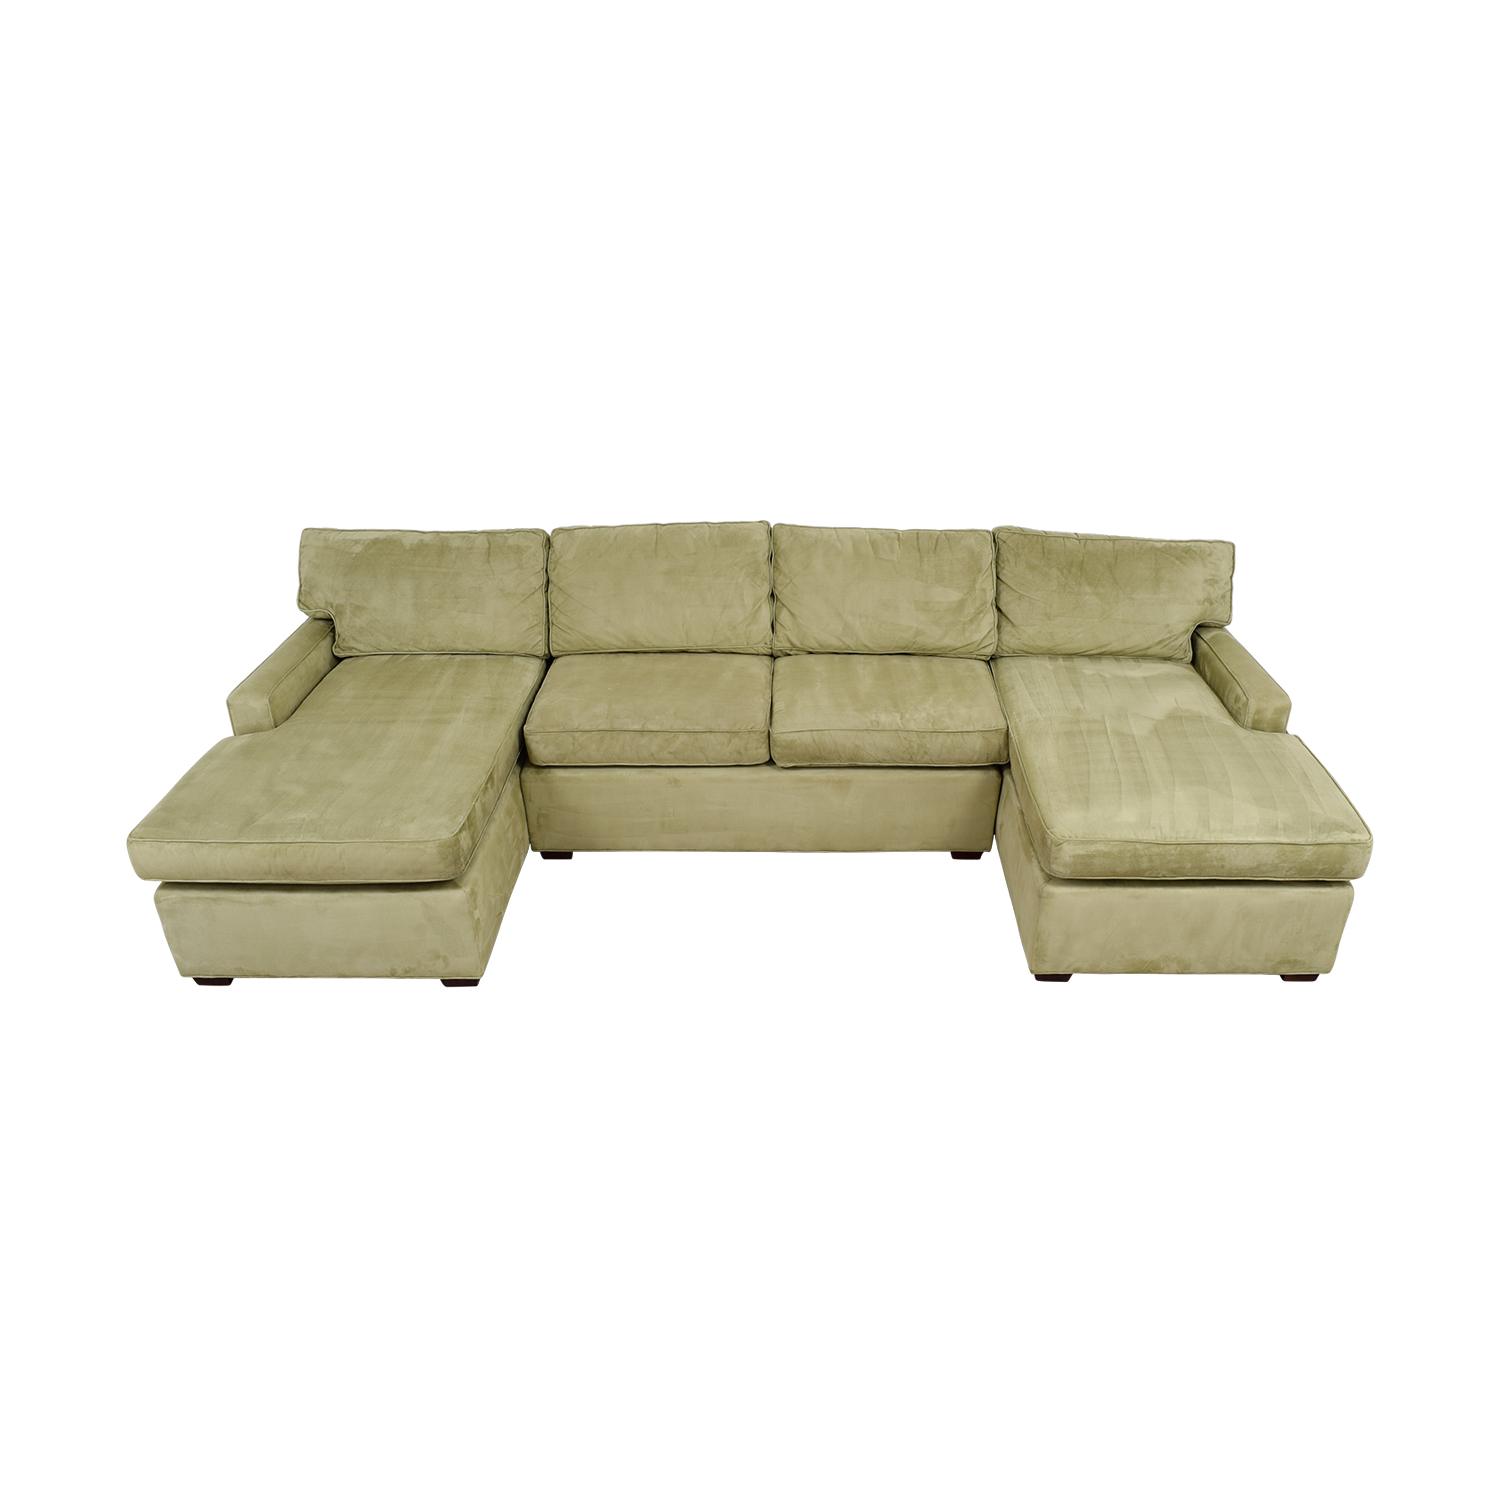 Astounding 86 Off Pottery Barn Pottery Barn Double Chaise Light Green Sectional Sofas Gmtry Best Dining Table And Chair Ideas Images Gmtryco